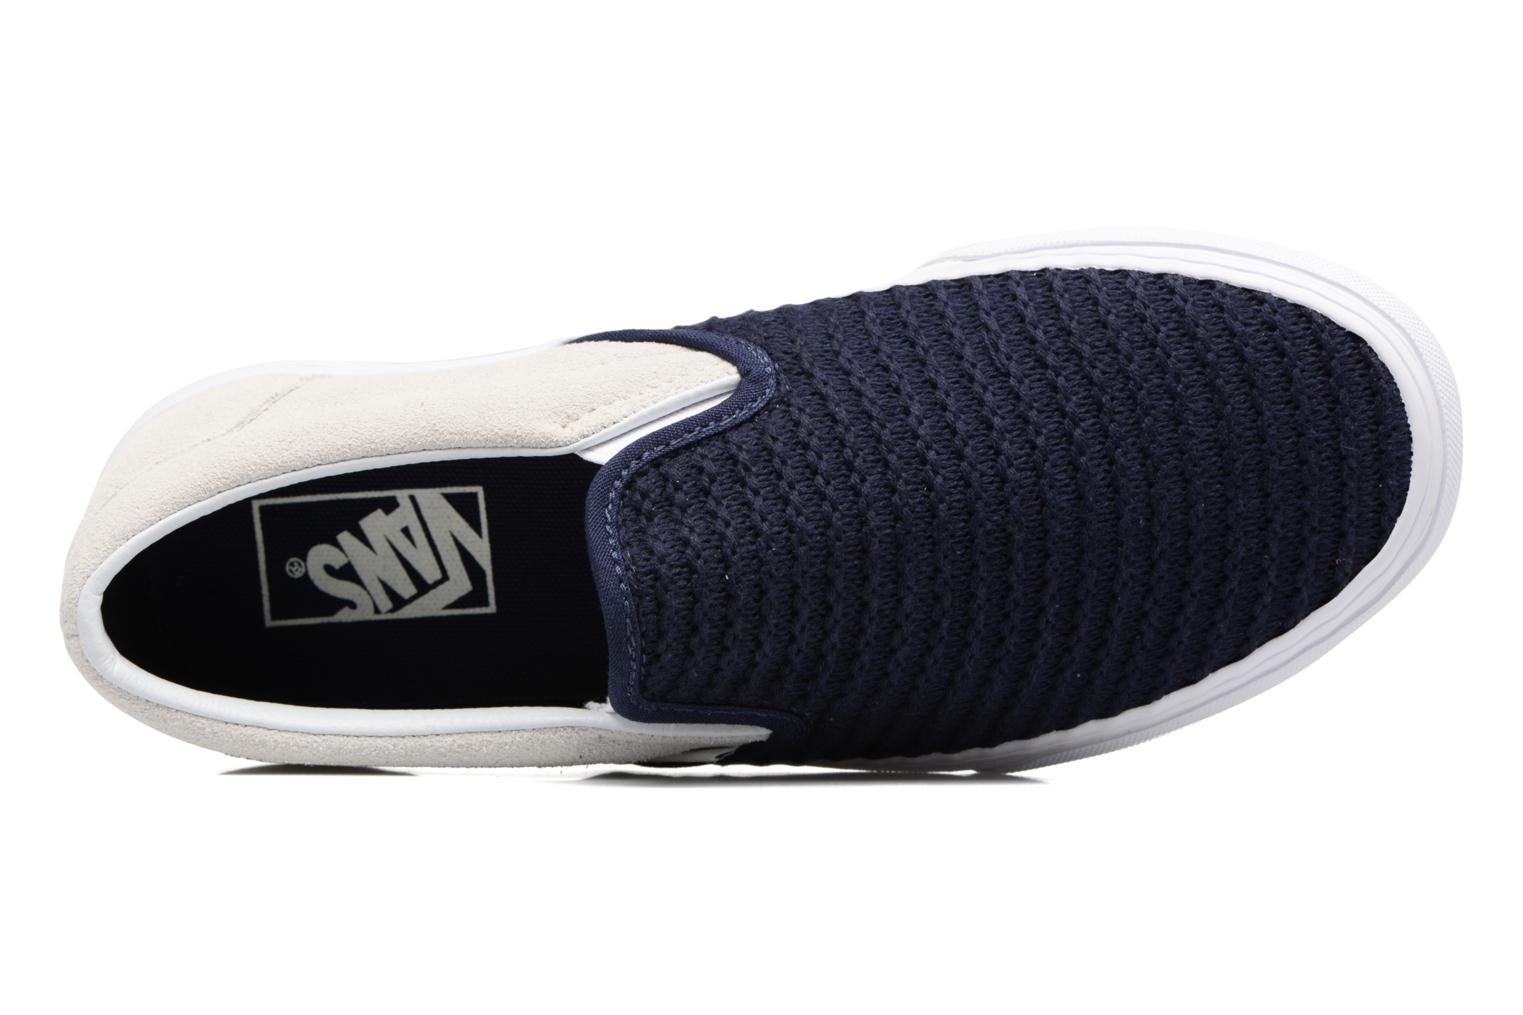 Classic Slip-On W (Suede/Woven) Navy Blue/True White